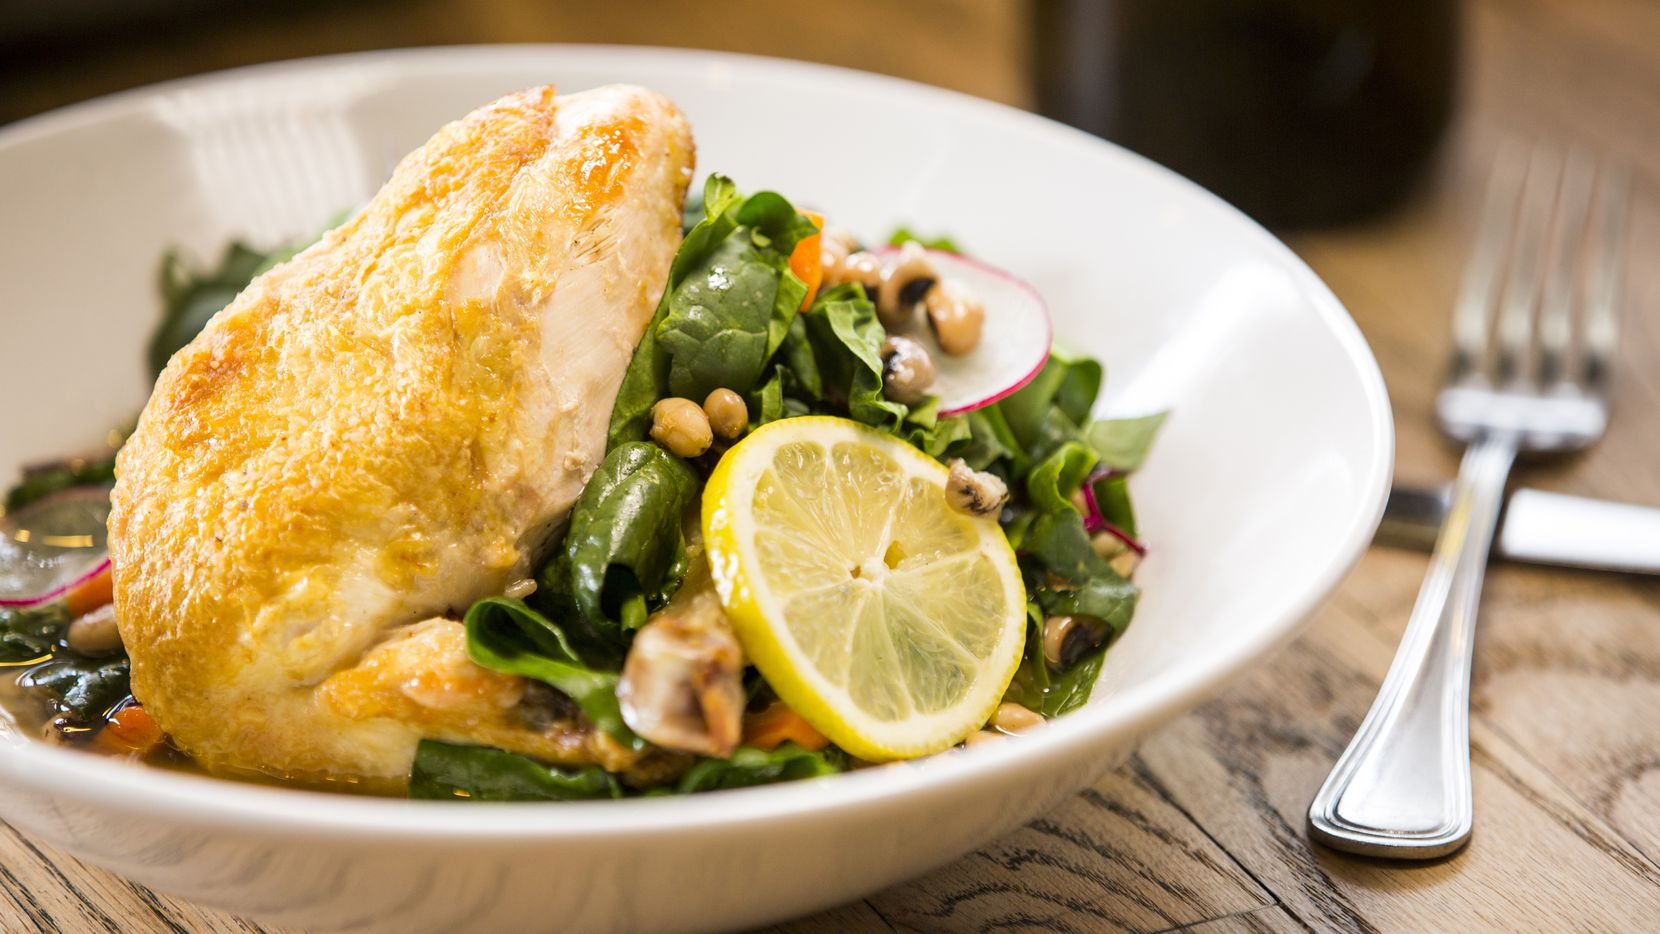 Roast chicken with greens and radishes by Andrea Shackelford at Harvest